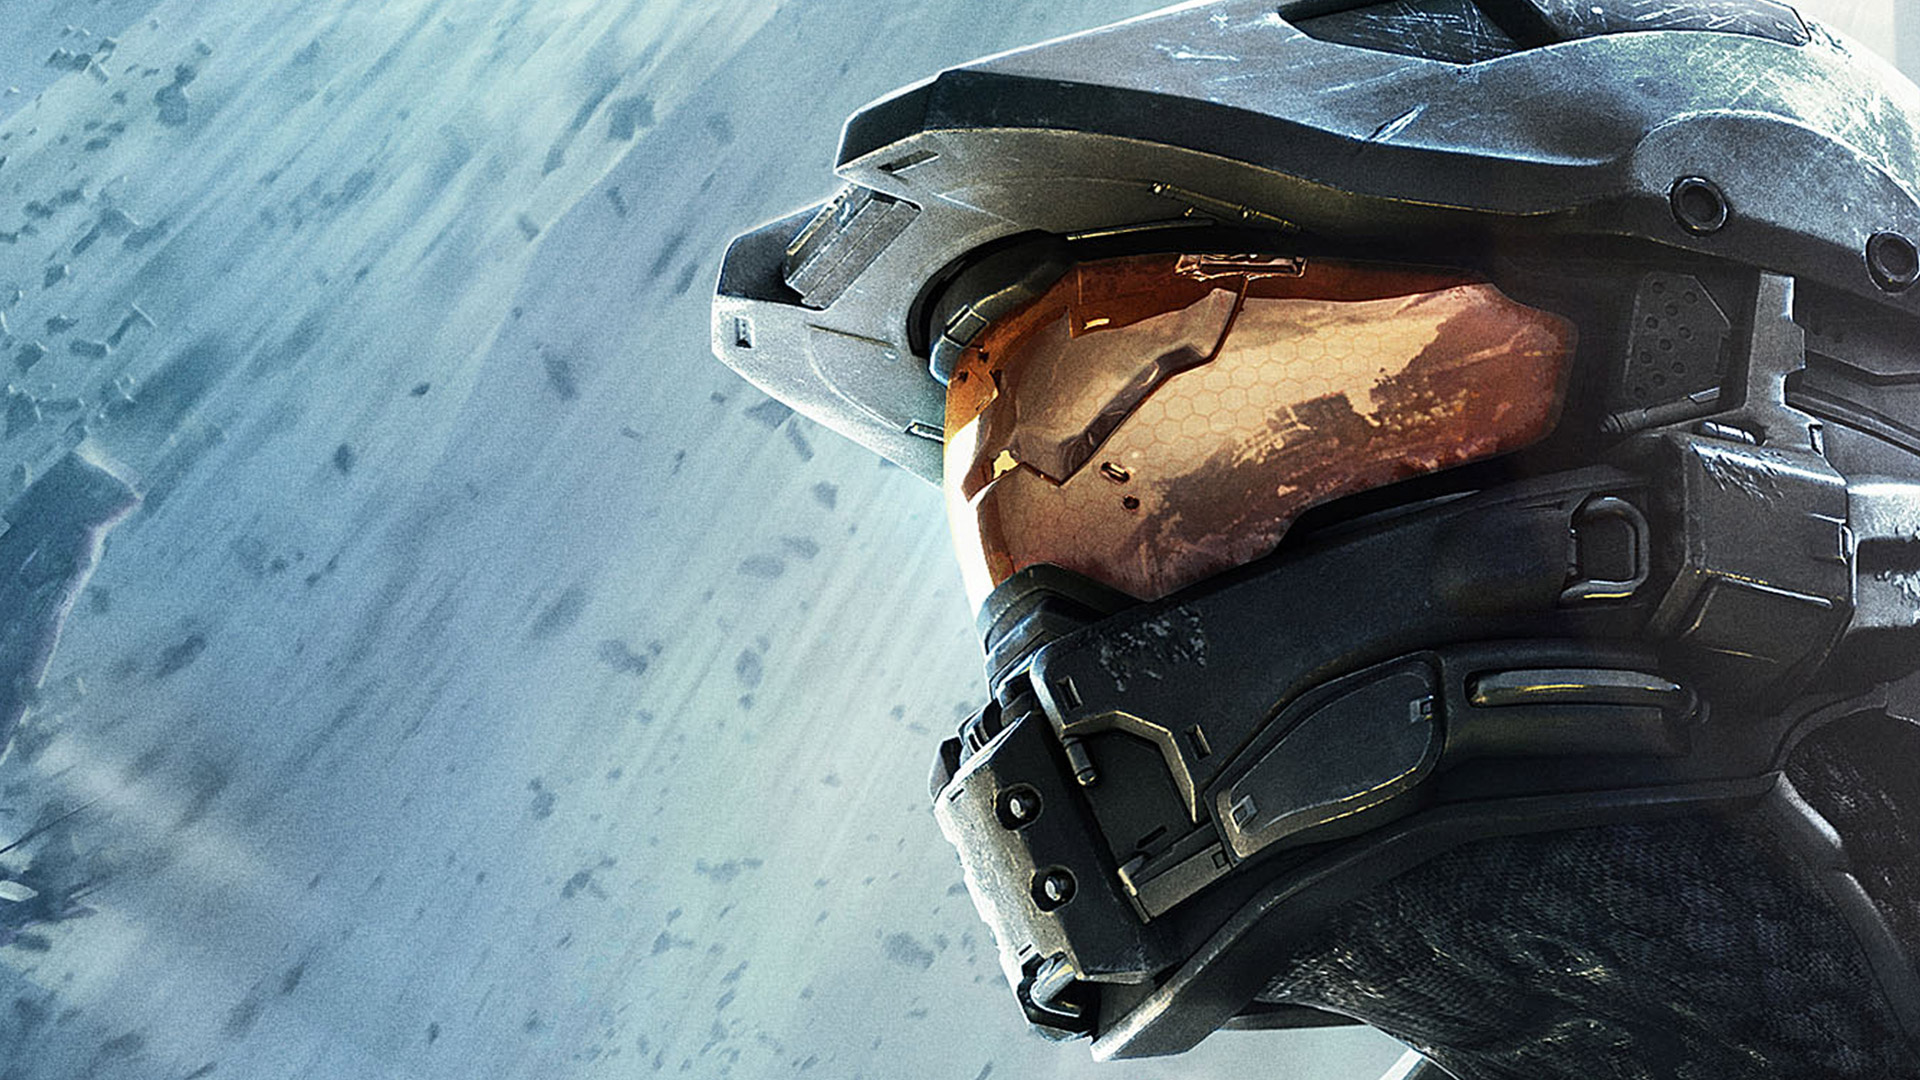 Download Halo 4 Wide Exclusive Hd Wallpapers 2995 1920x1080